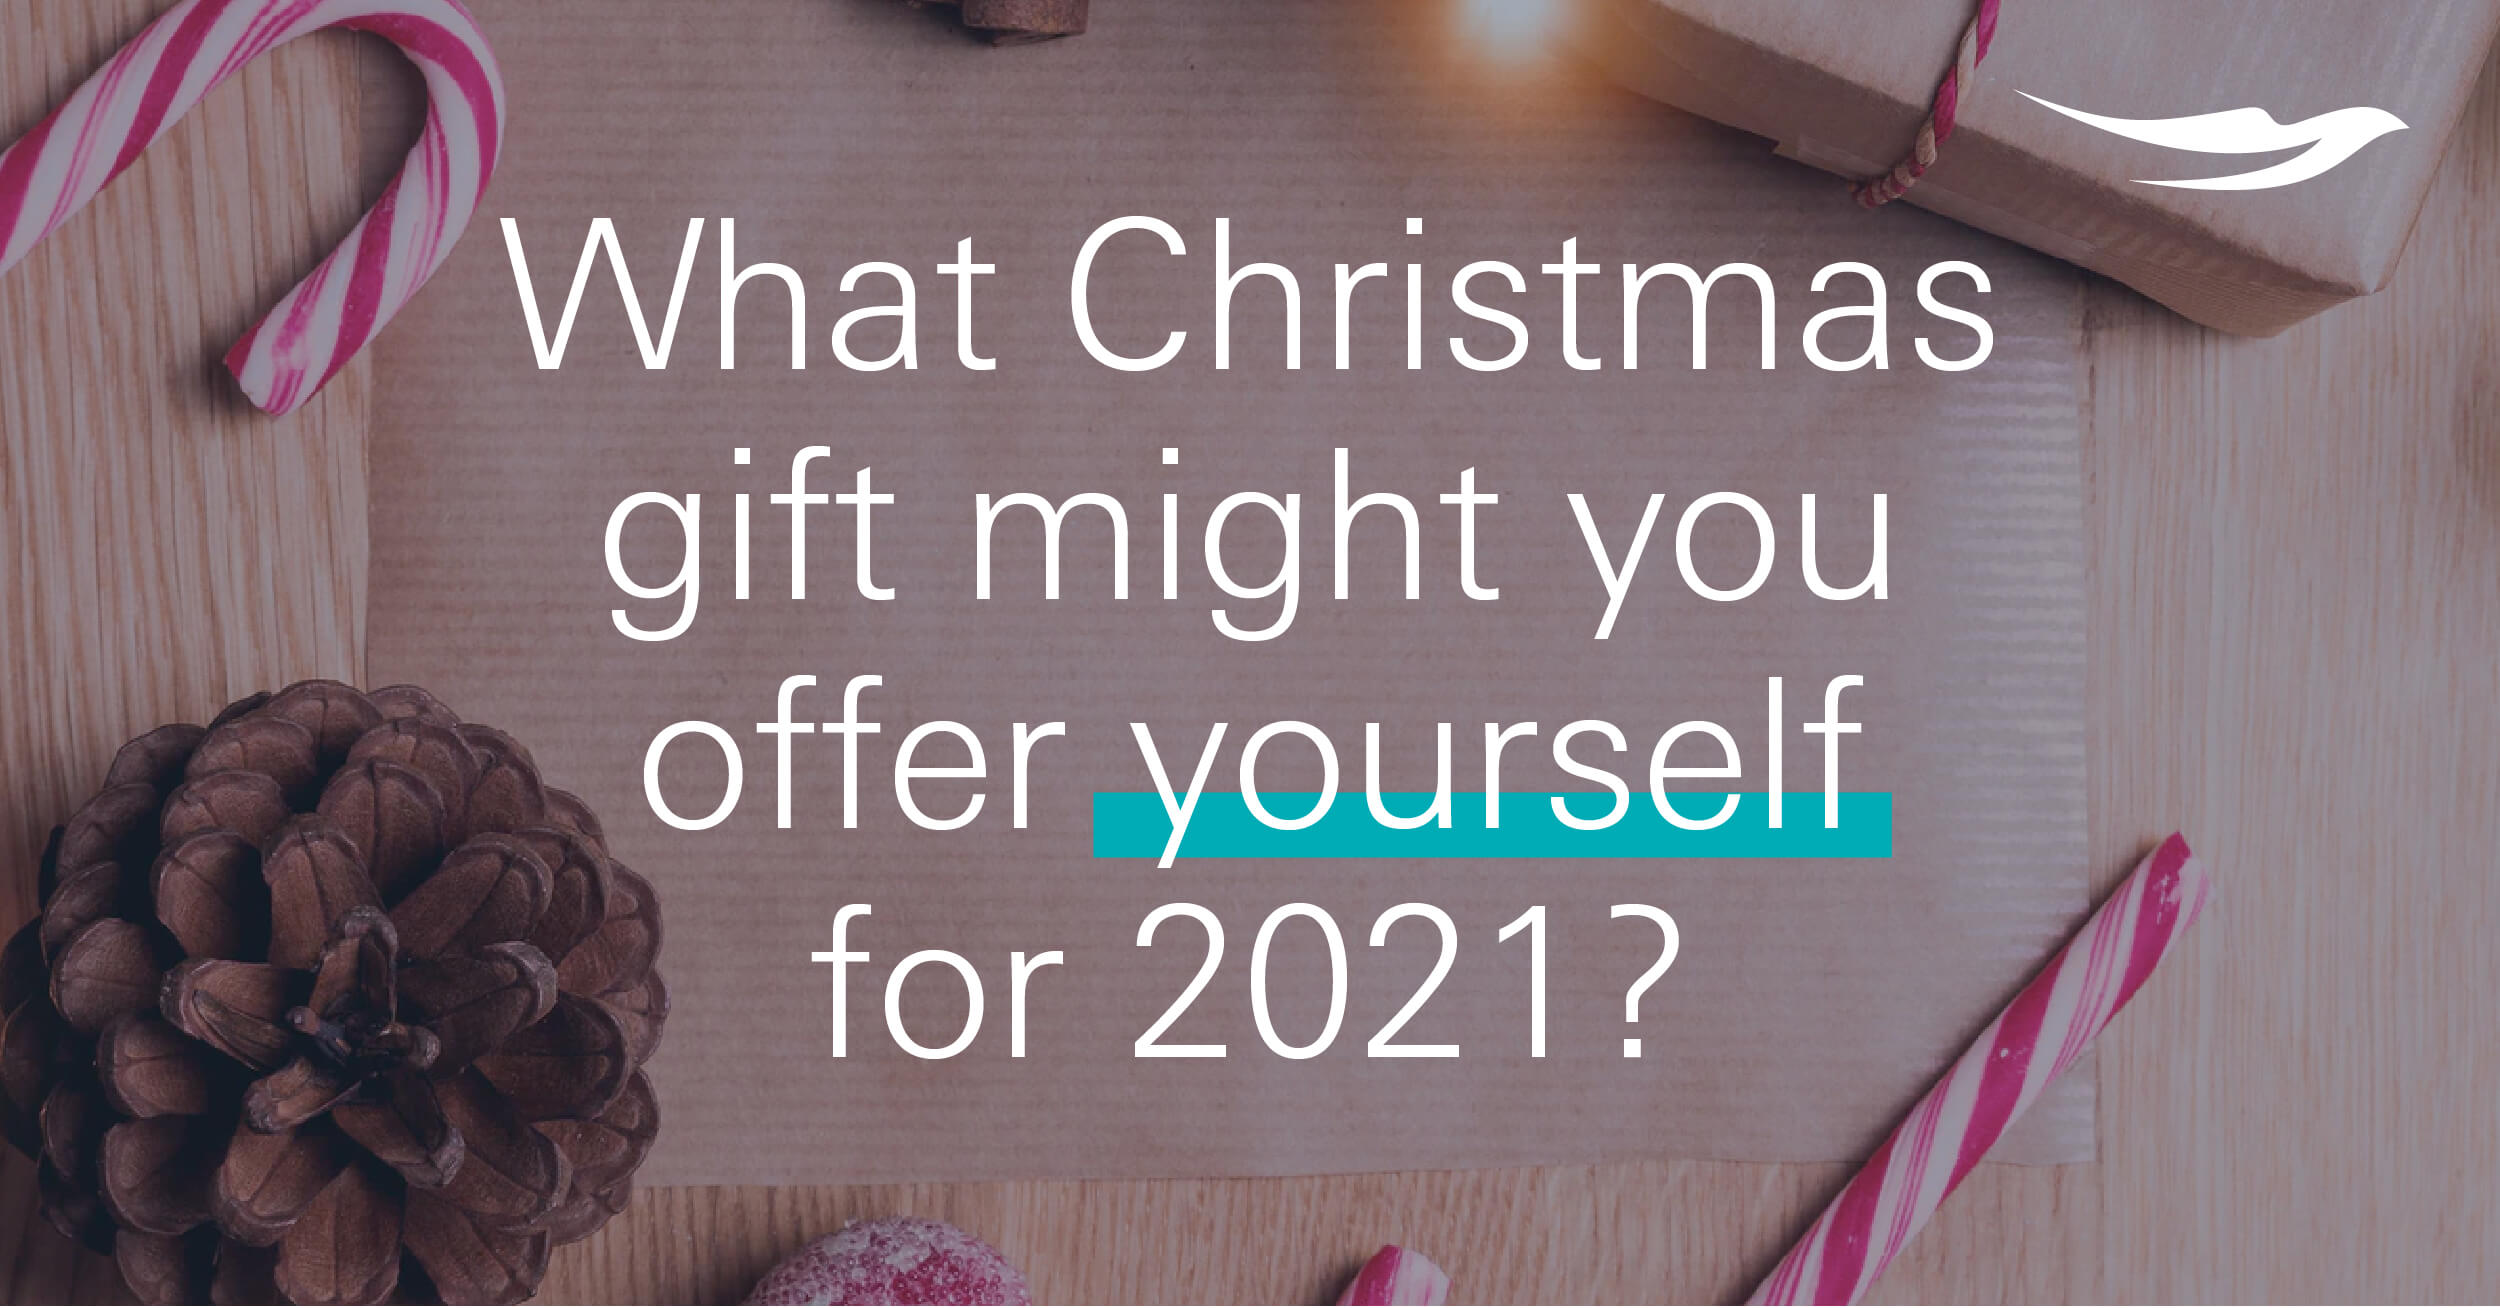 What Christmas gift might you offer yourself for 2021?